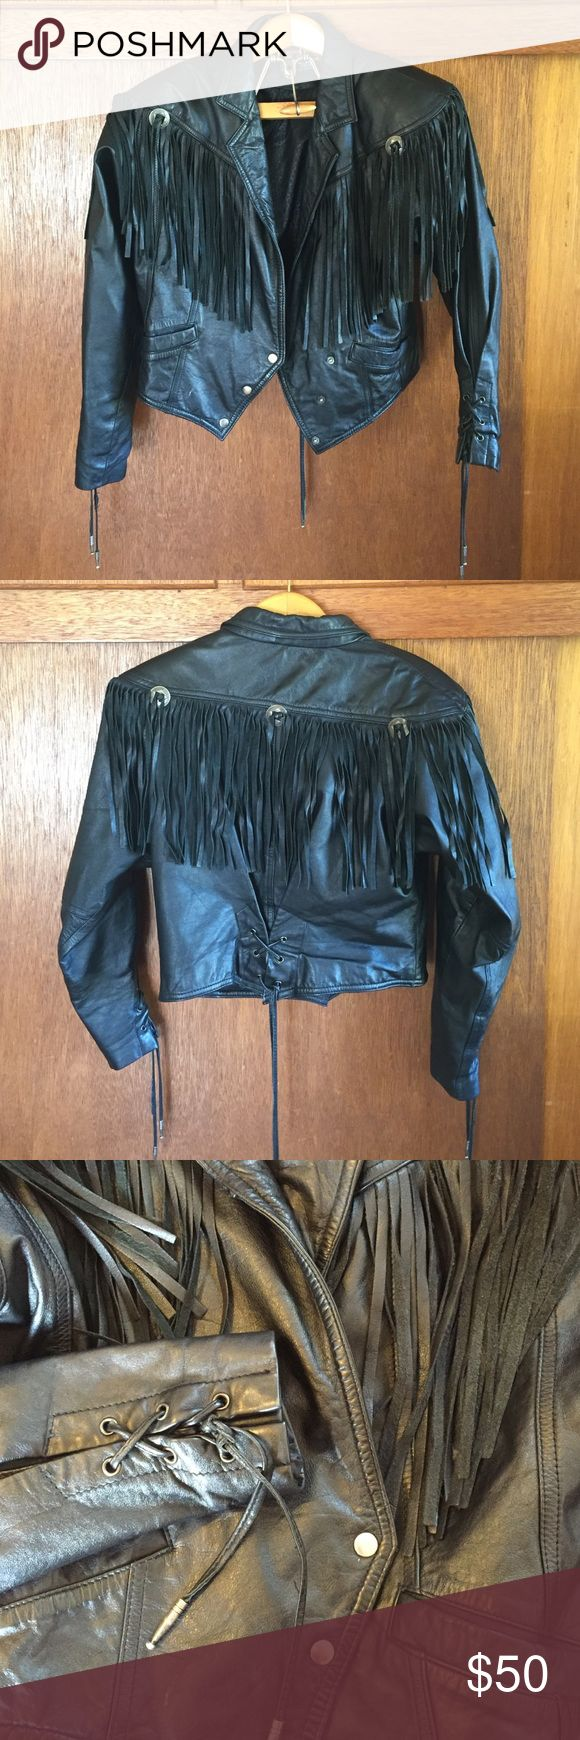 Genuine Leather Fringe Motorcycle Jacket So you're a biker. Or an aspiring biker. You must be if you're checking out this leather jacket made for motorcycles, right? If you're not afraid of turning heads, feeling like the queen of the road, and giving off a slightly dangerous vibe, this jacket is for you. Complete with long fridge, silver beads, a three-snap asymmetrical front closure, and laced closures on the sleeves and the back. Strike fear and awe in the heart of common motorists. It's…